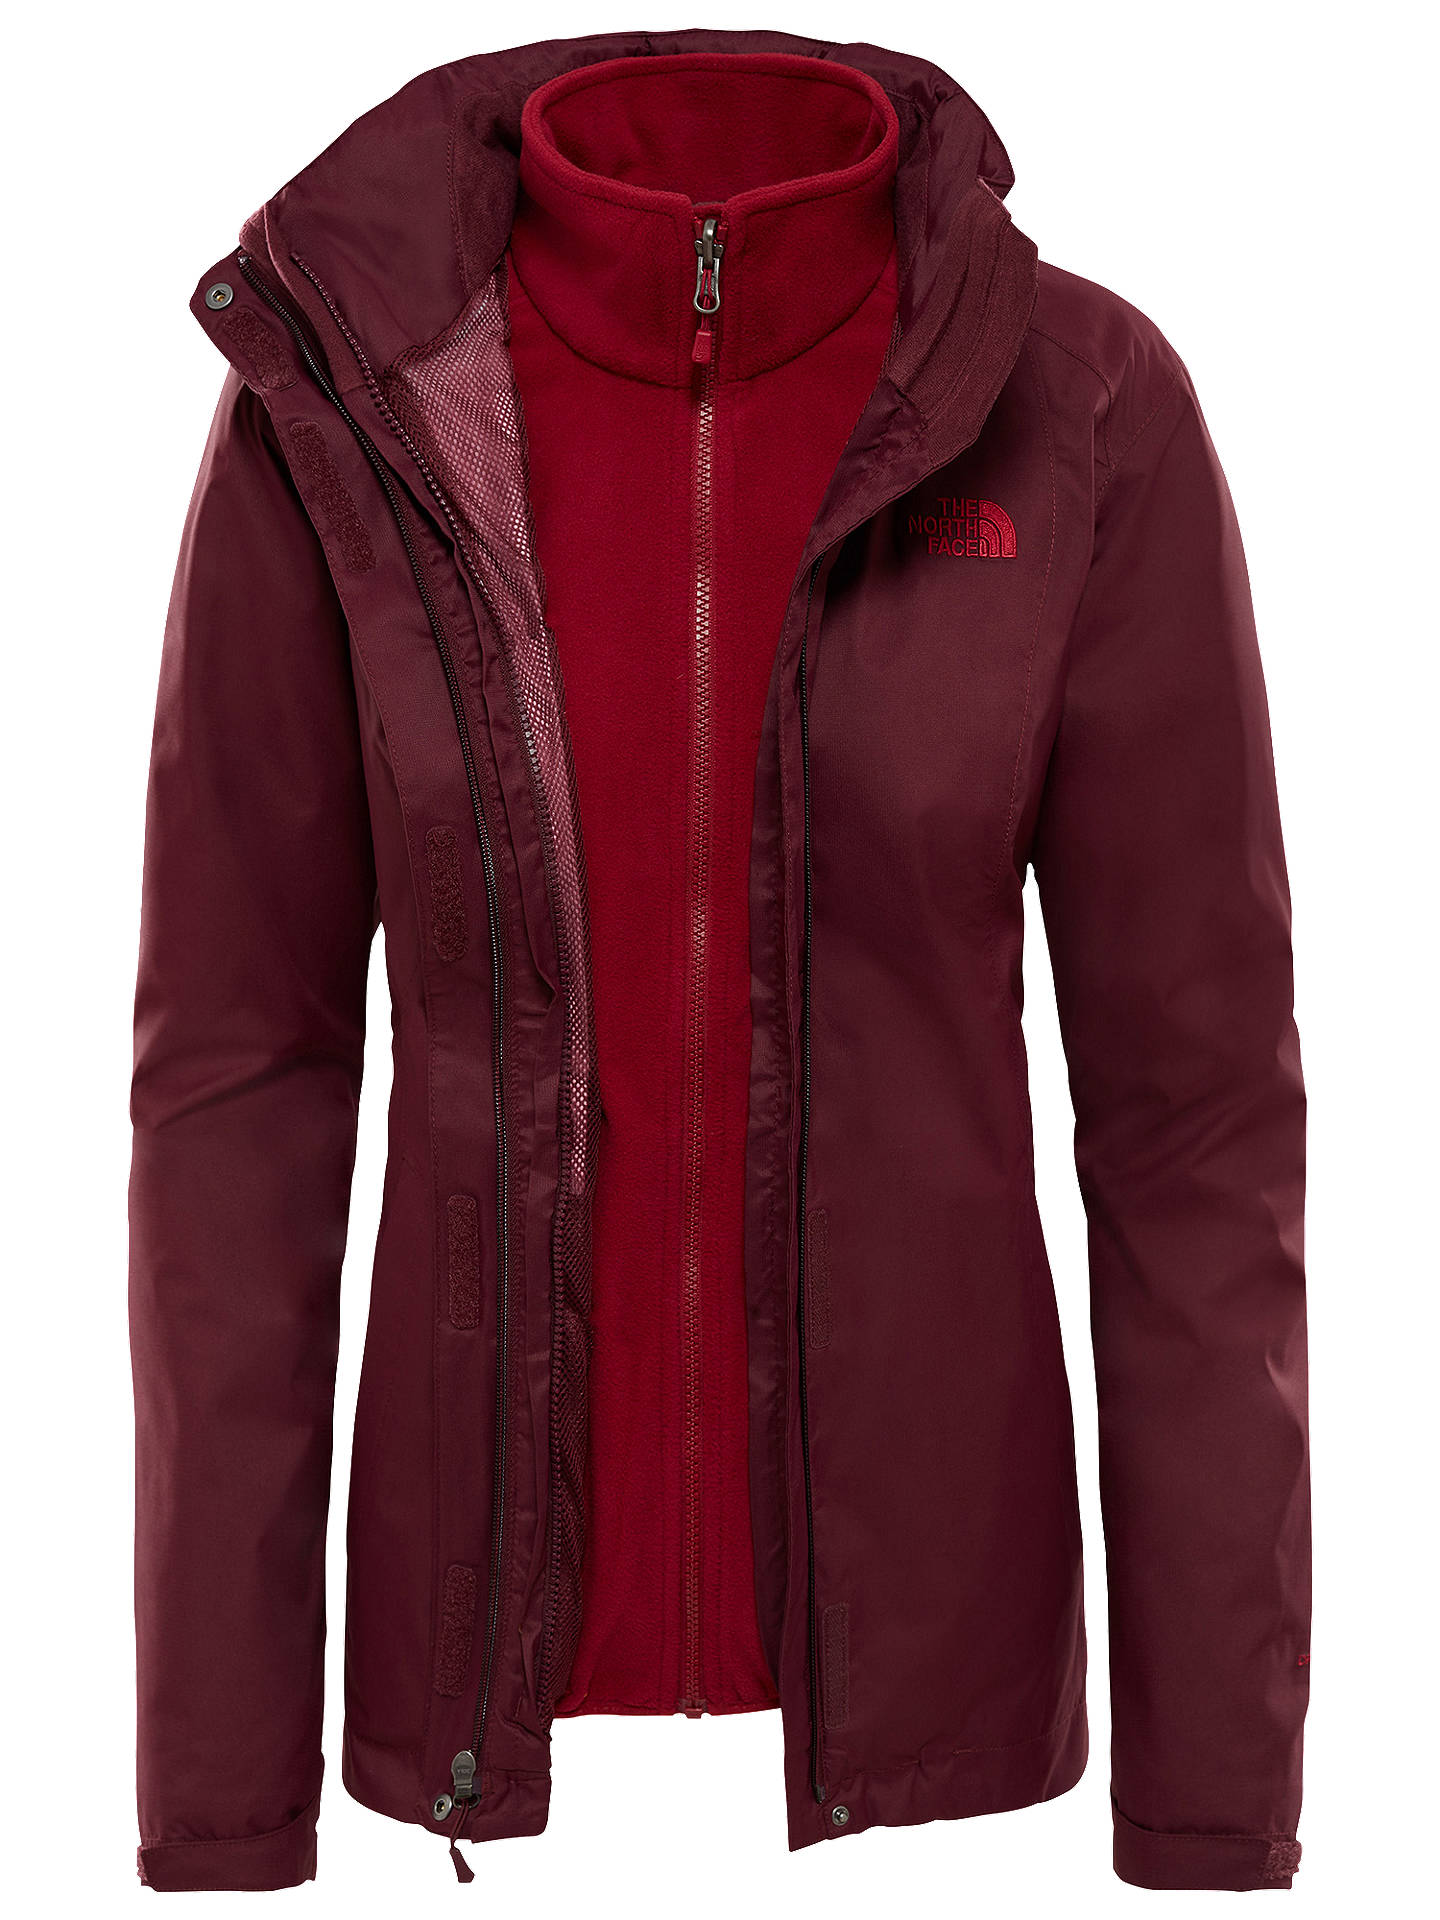 BuyThe North Face Evolve Triclimate Women's Jacket, Fig Brown/Rumba Red, S Online at johnlewis.com